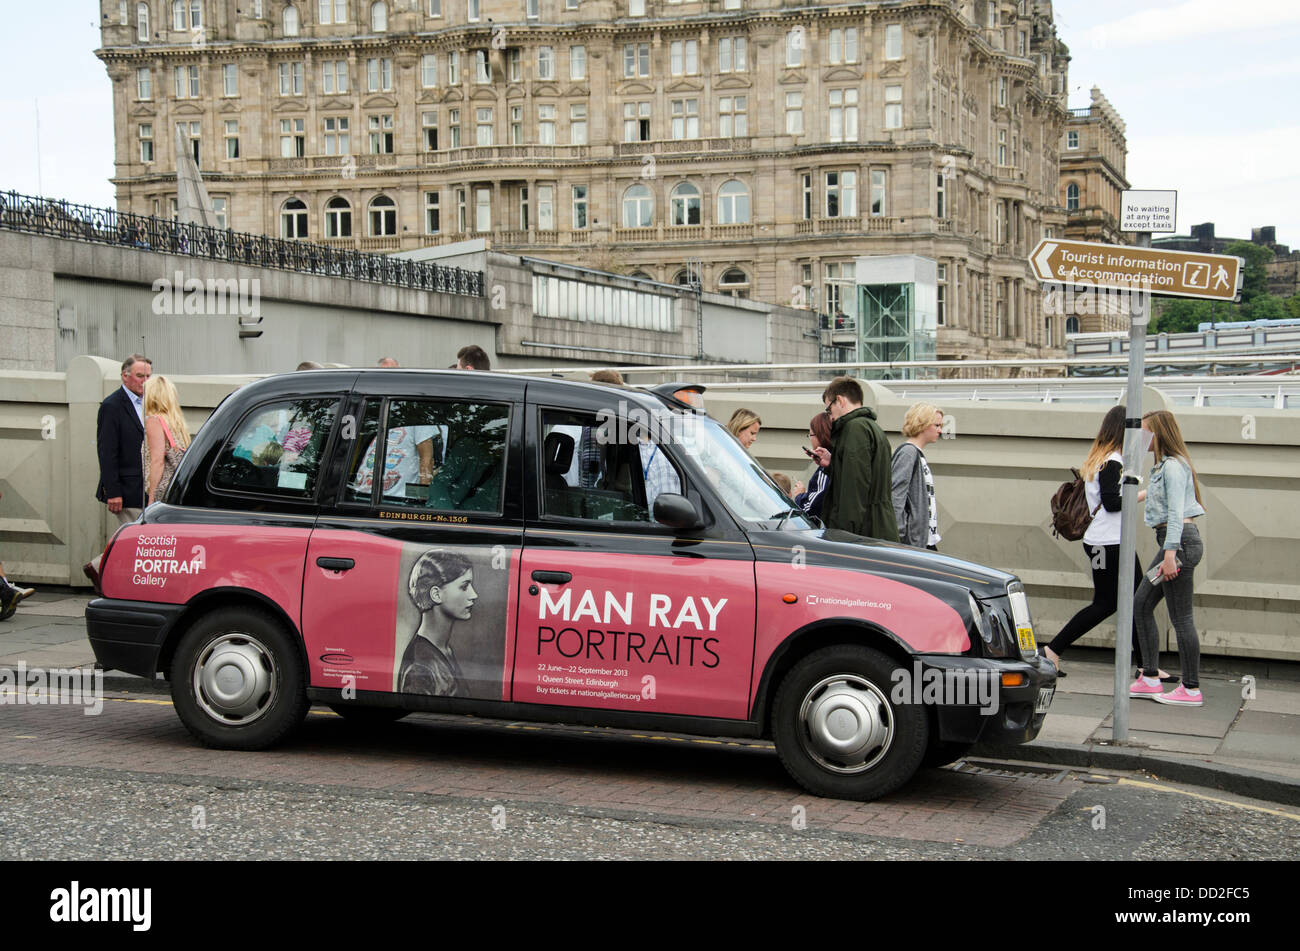 A taxi on Waverley Bridge with an advertisement for an Exhibition of Man Ray Portraits in the Scottish National - Stock Image